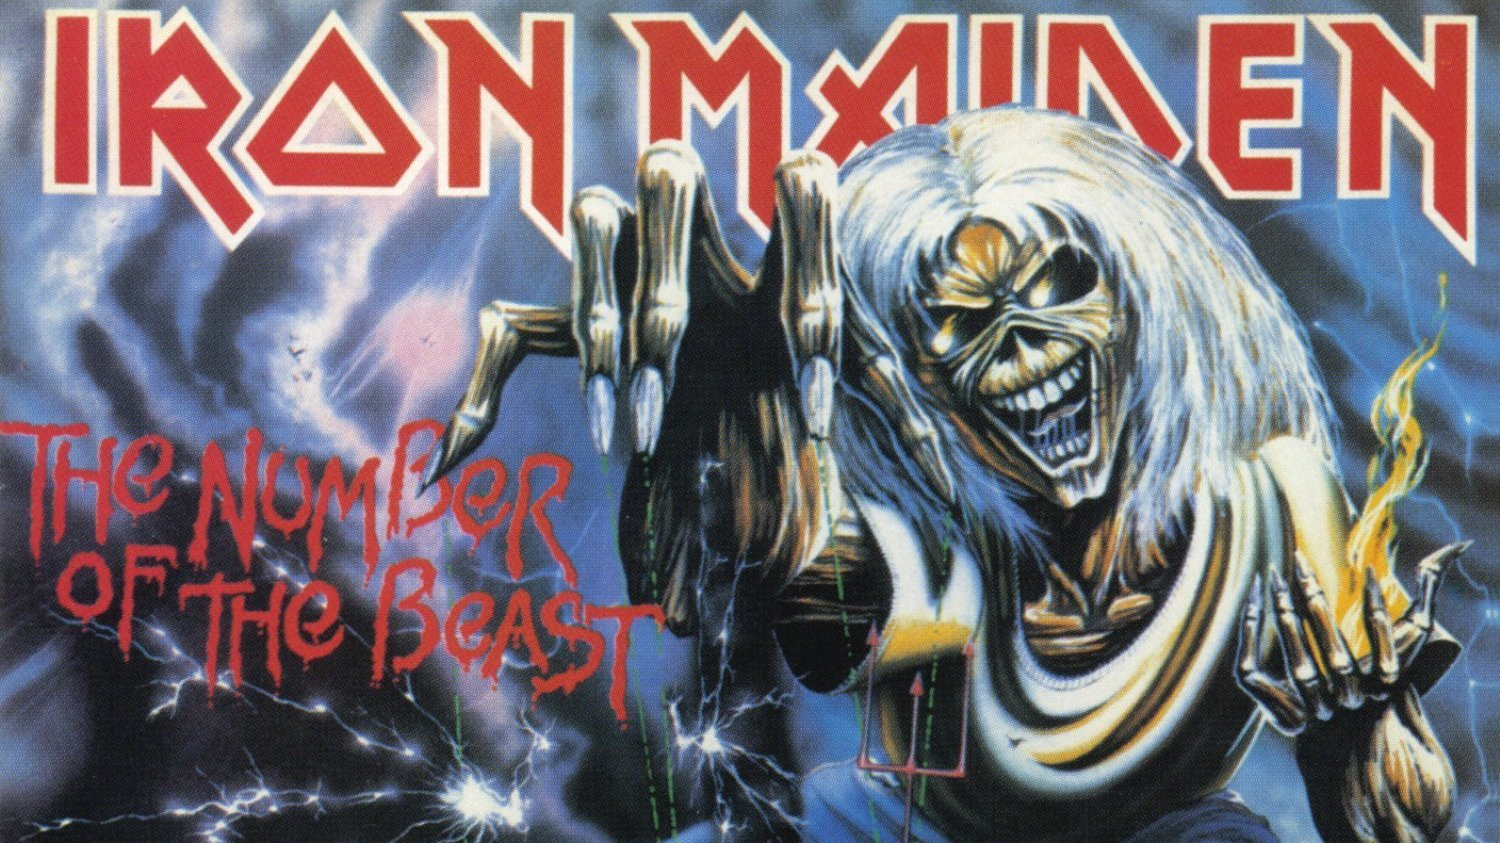 The Story Behind Iron Maidens The Number Of The Beast Album Artwork